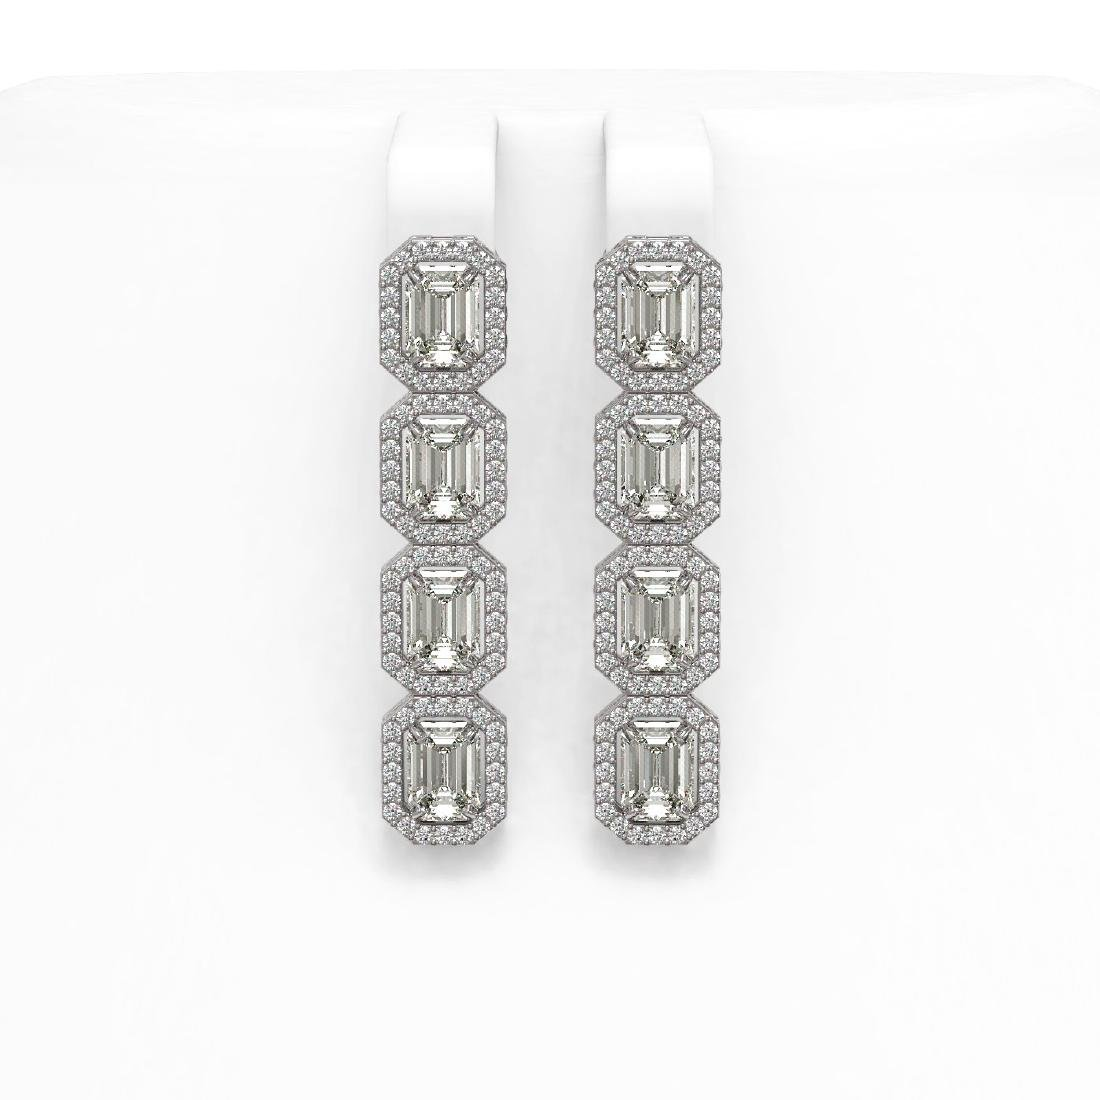 6.08 CTW Emerald Cut Diamond Designer Earrings 18K